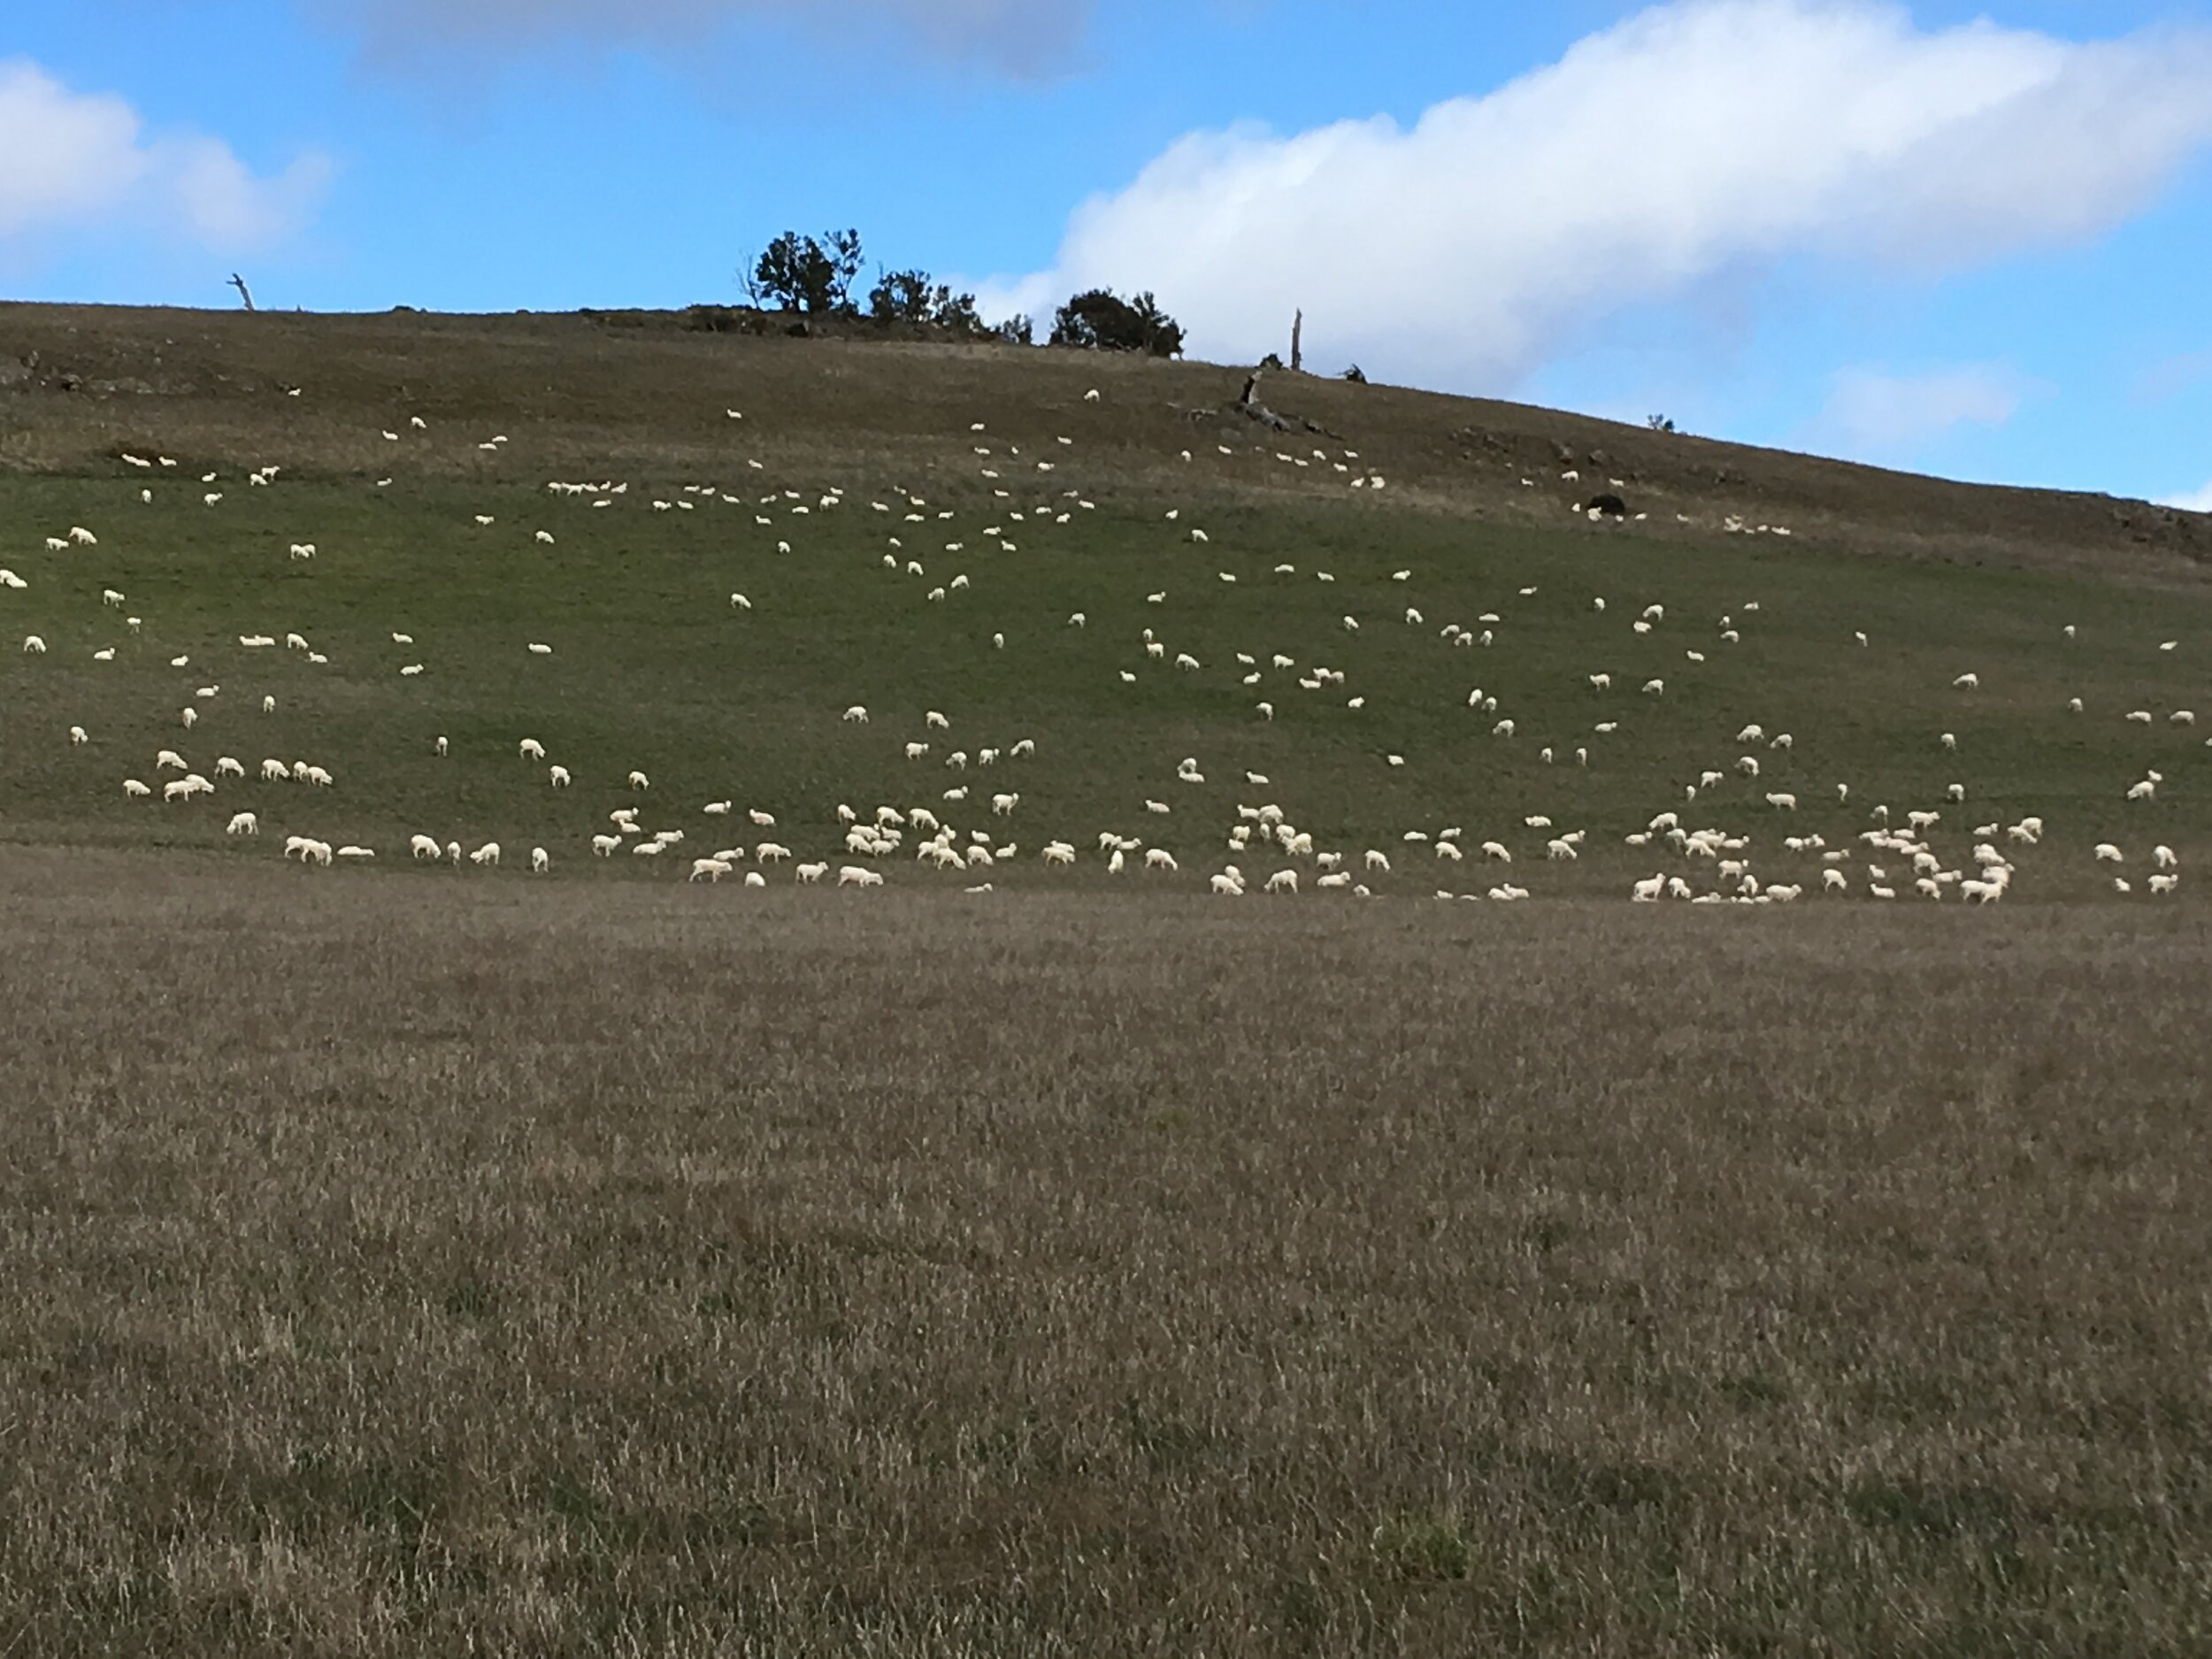 On the sheltered side of the hill in the lucerne (alfalfa) paddock, two days after shearing.